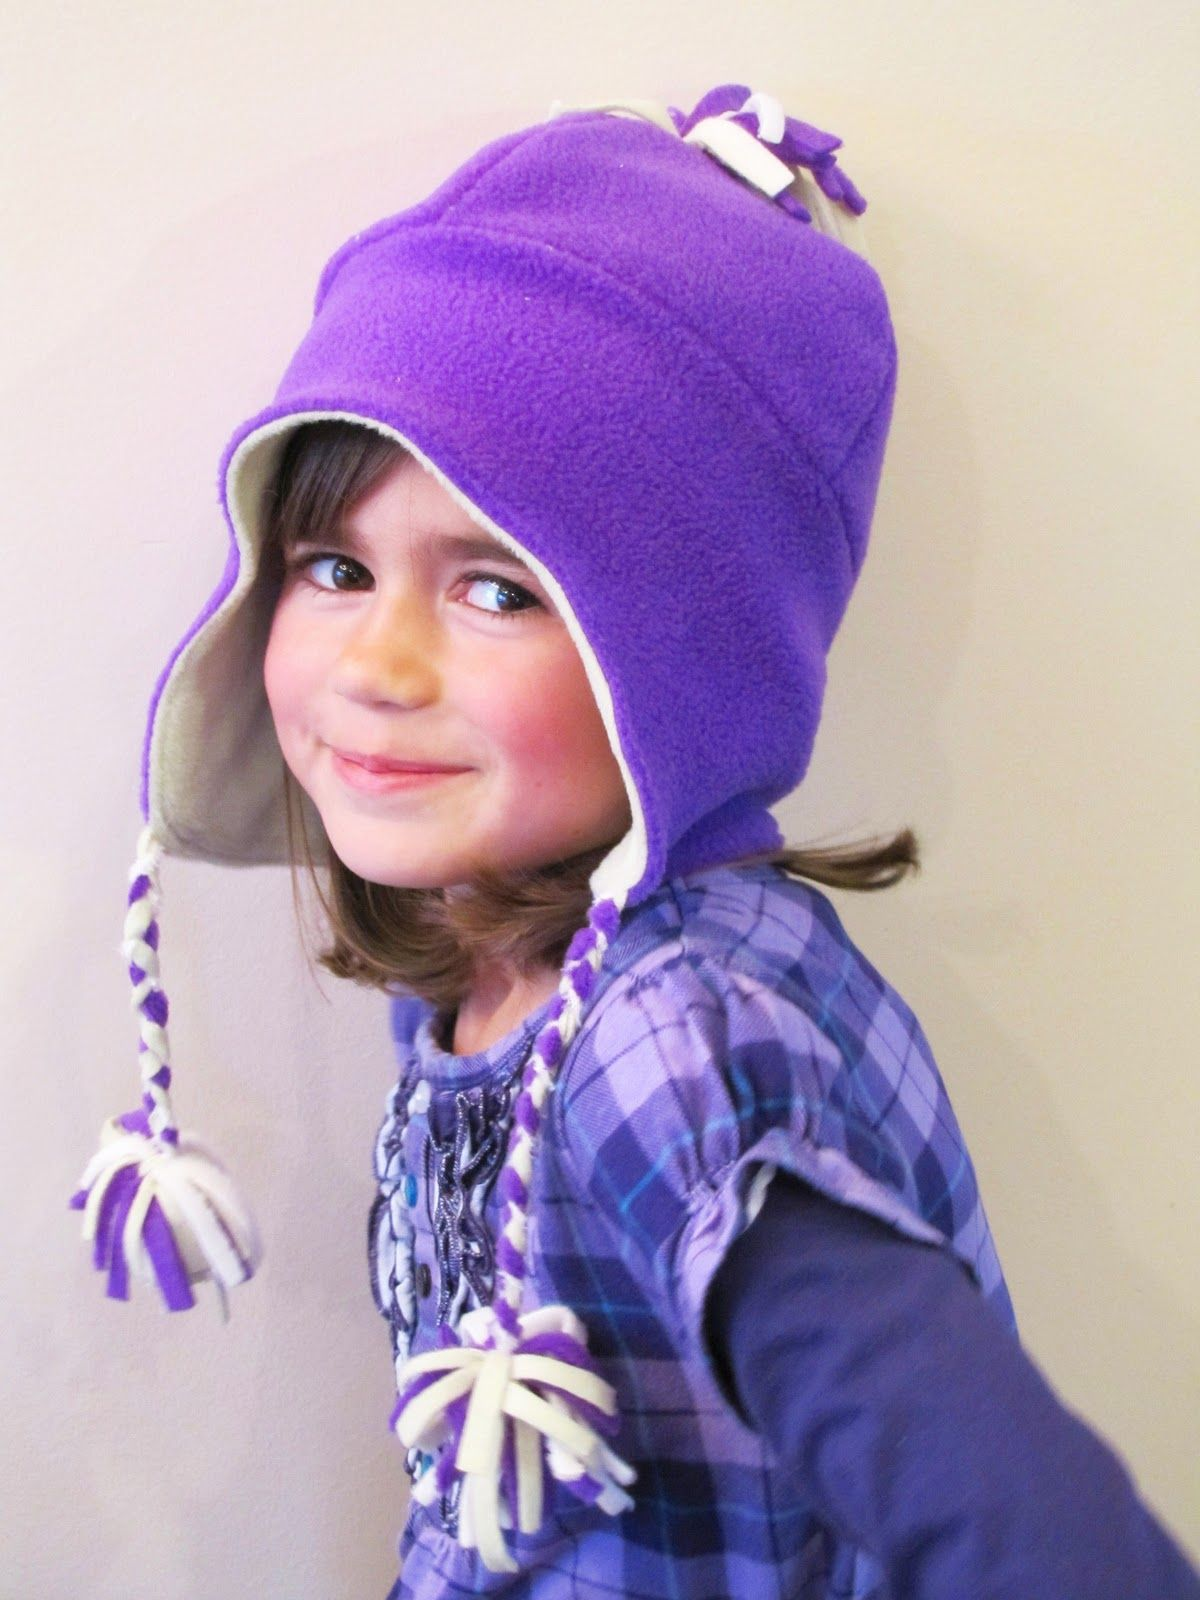 From An Igloo: Warm Winter Hat Pattern and Tutorial | Sewing ...